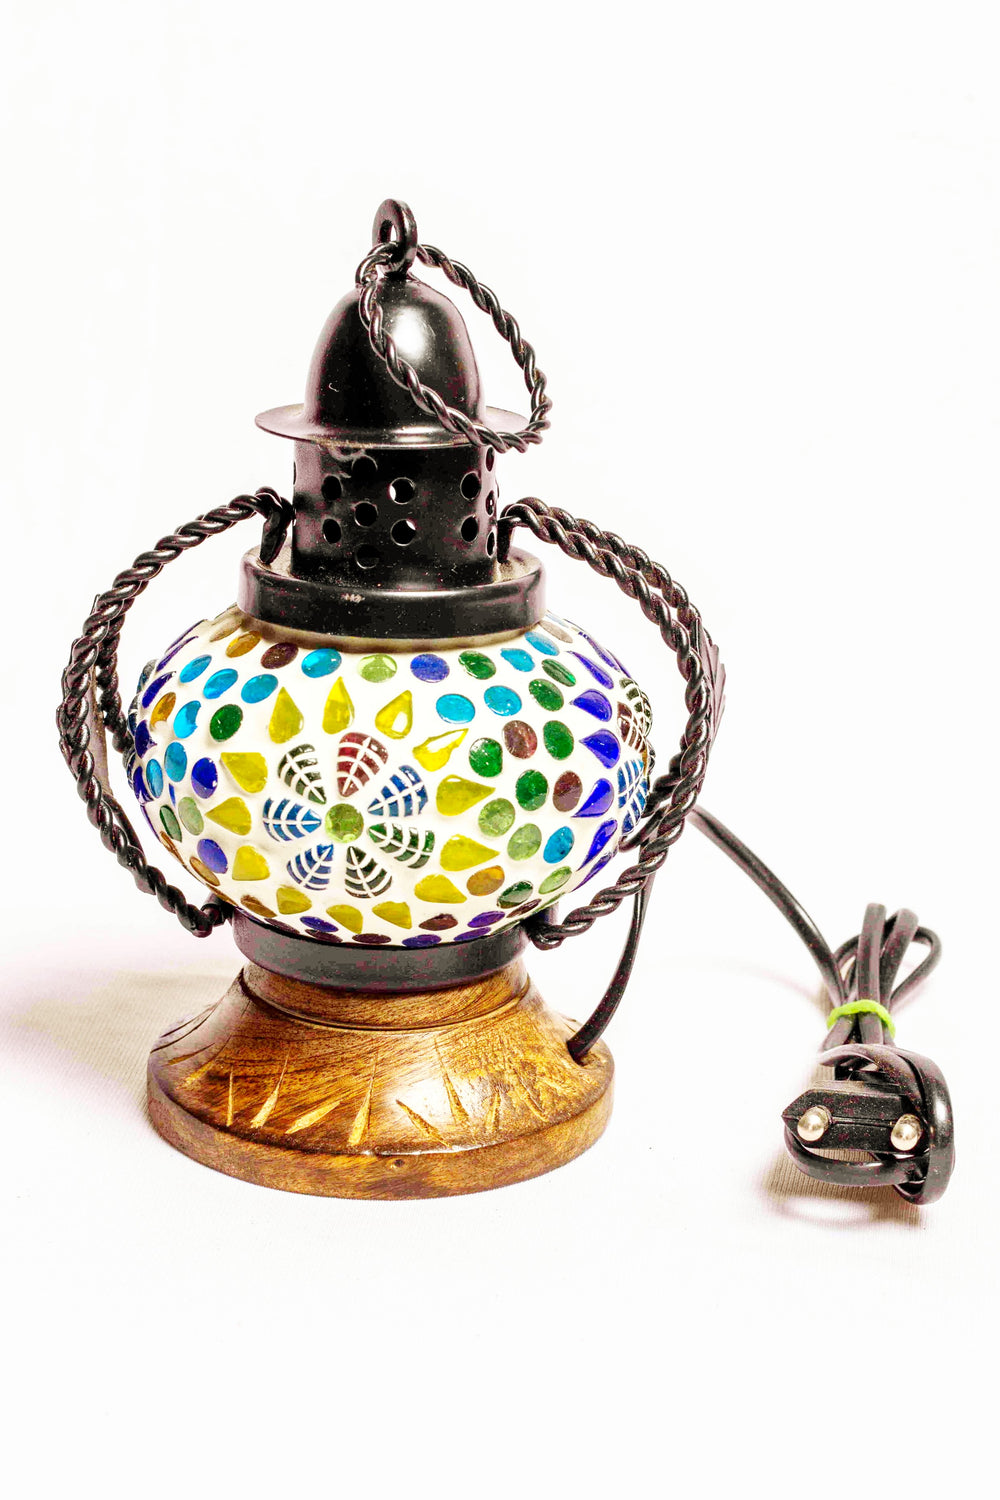 Metal and glass with wood, mosaic lantern